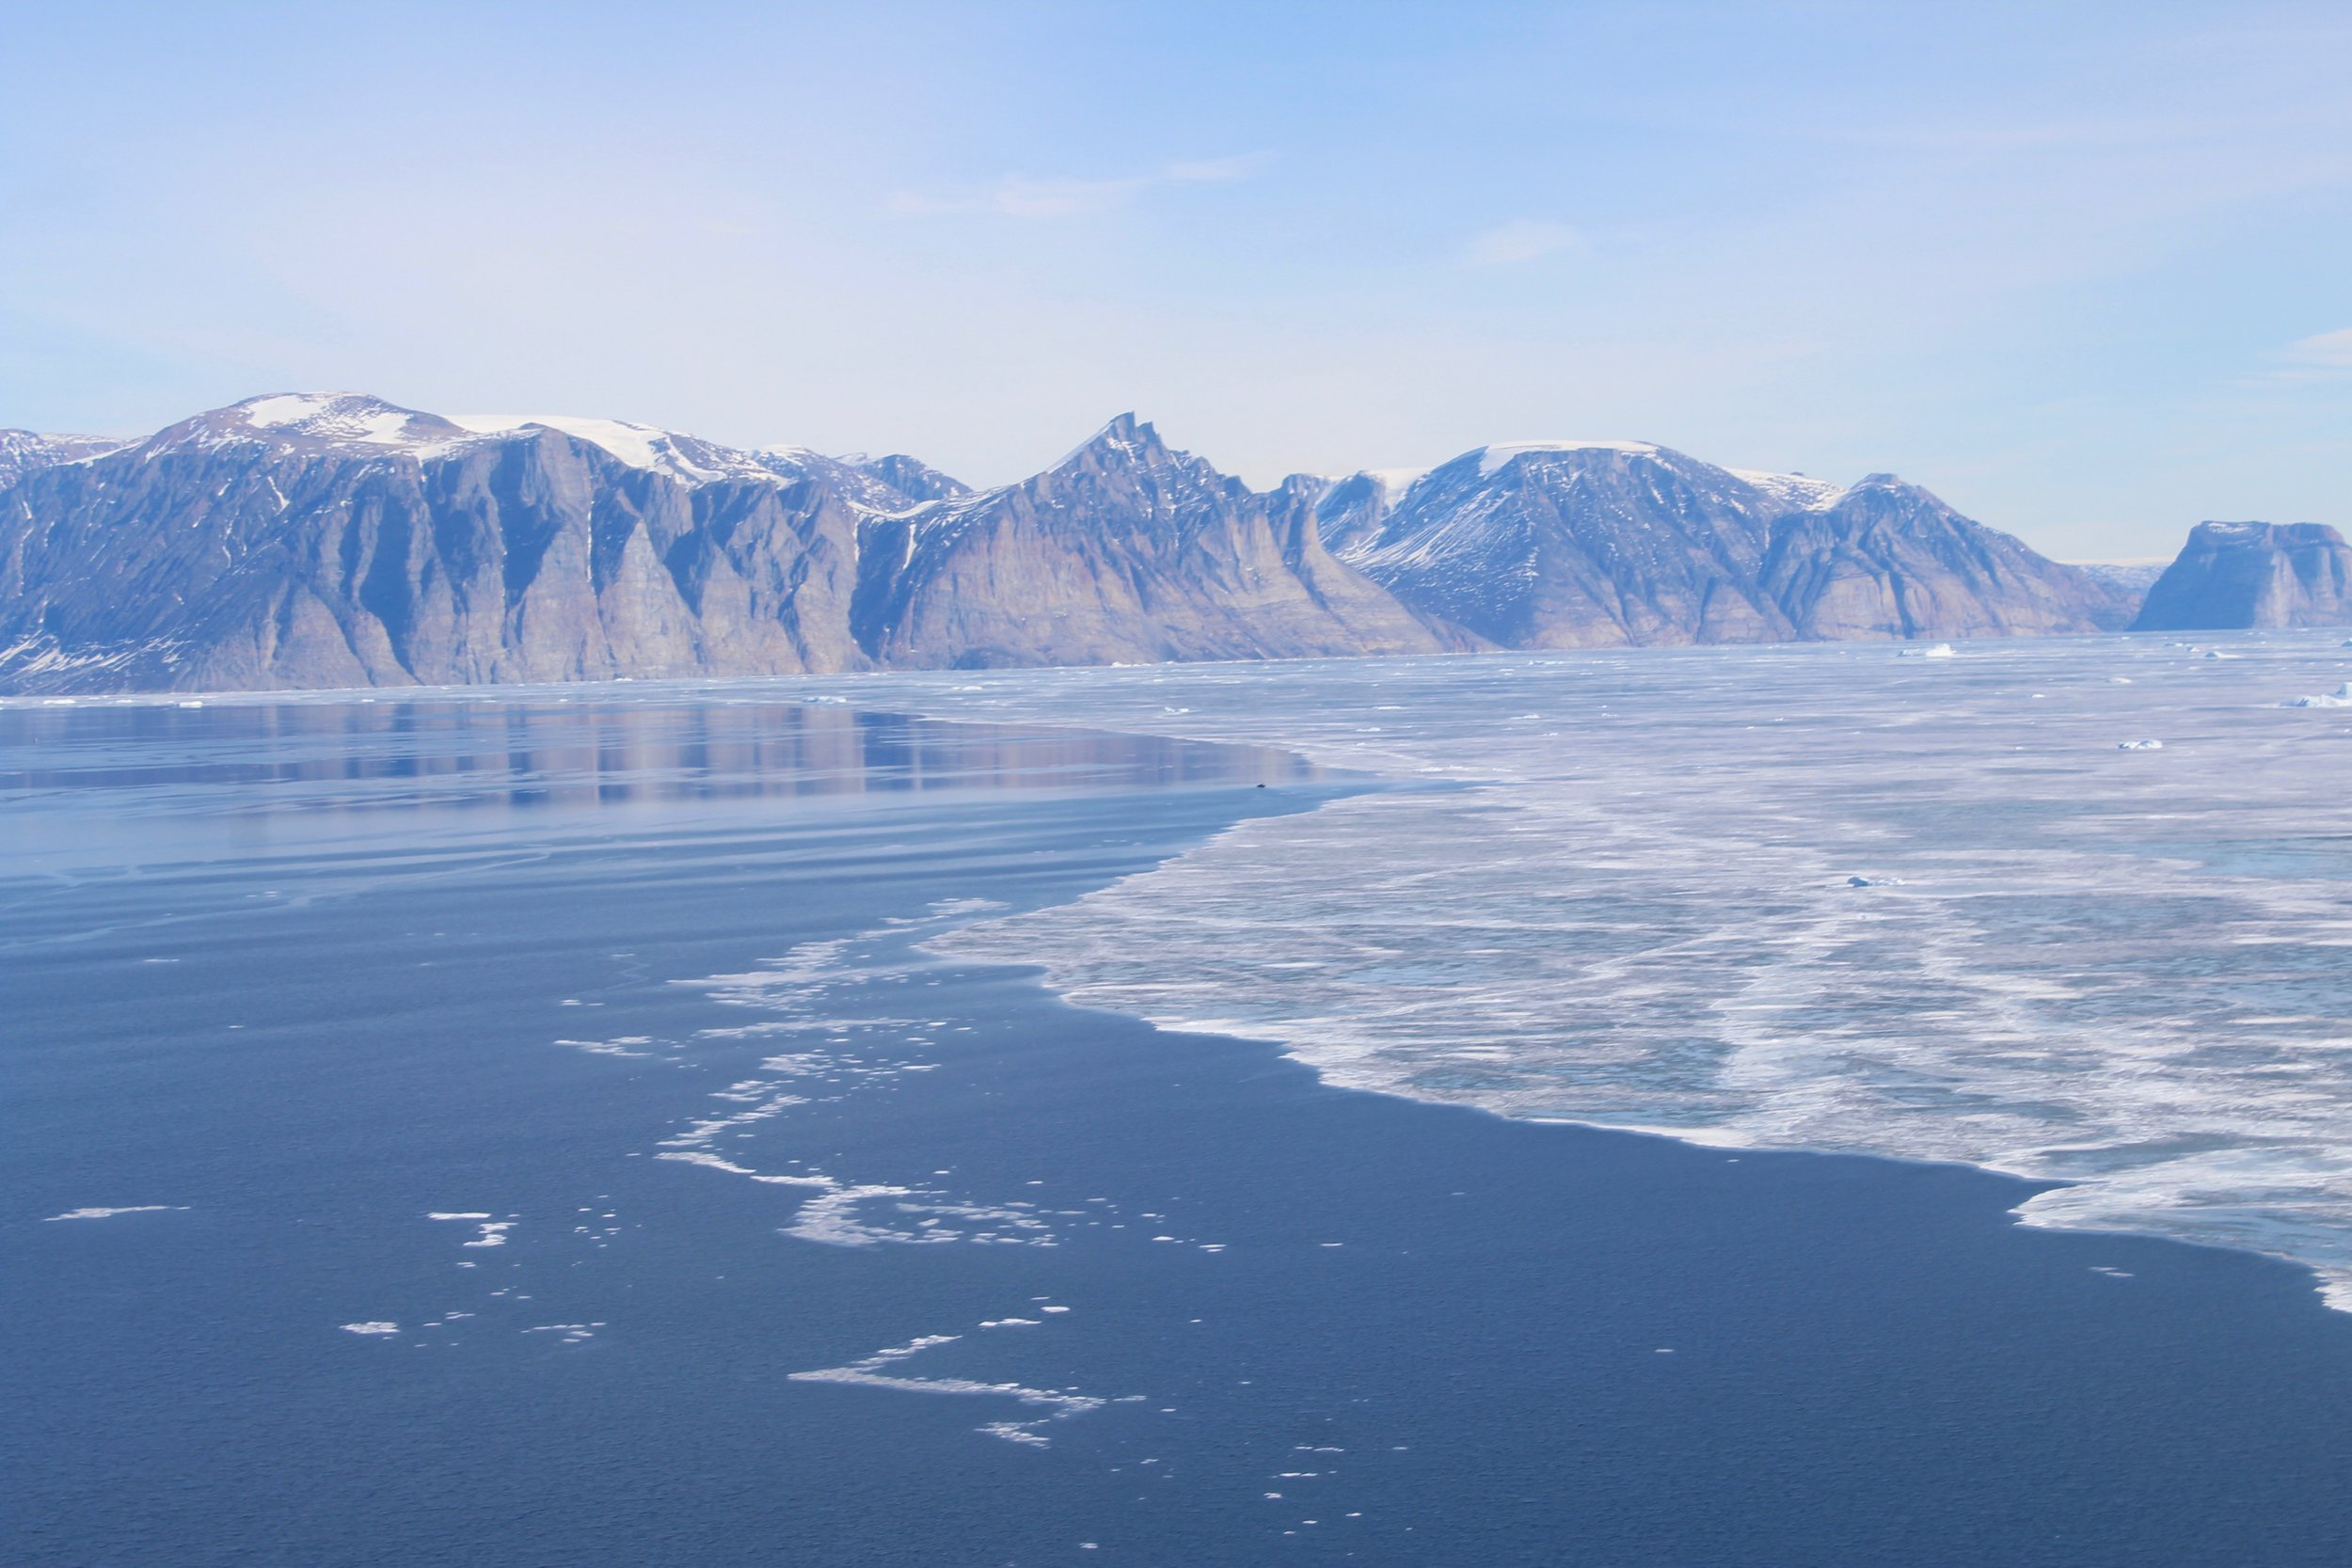 The shorefast ice edge in Uummannaq Fjord, viewed from a helicopter in May 2019